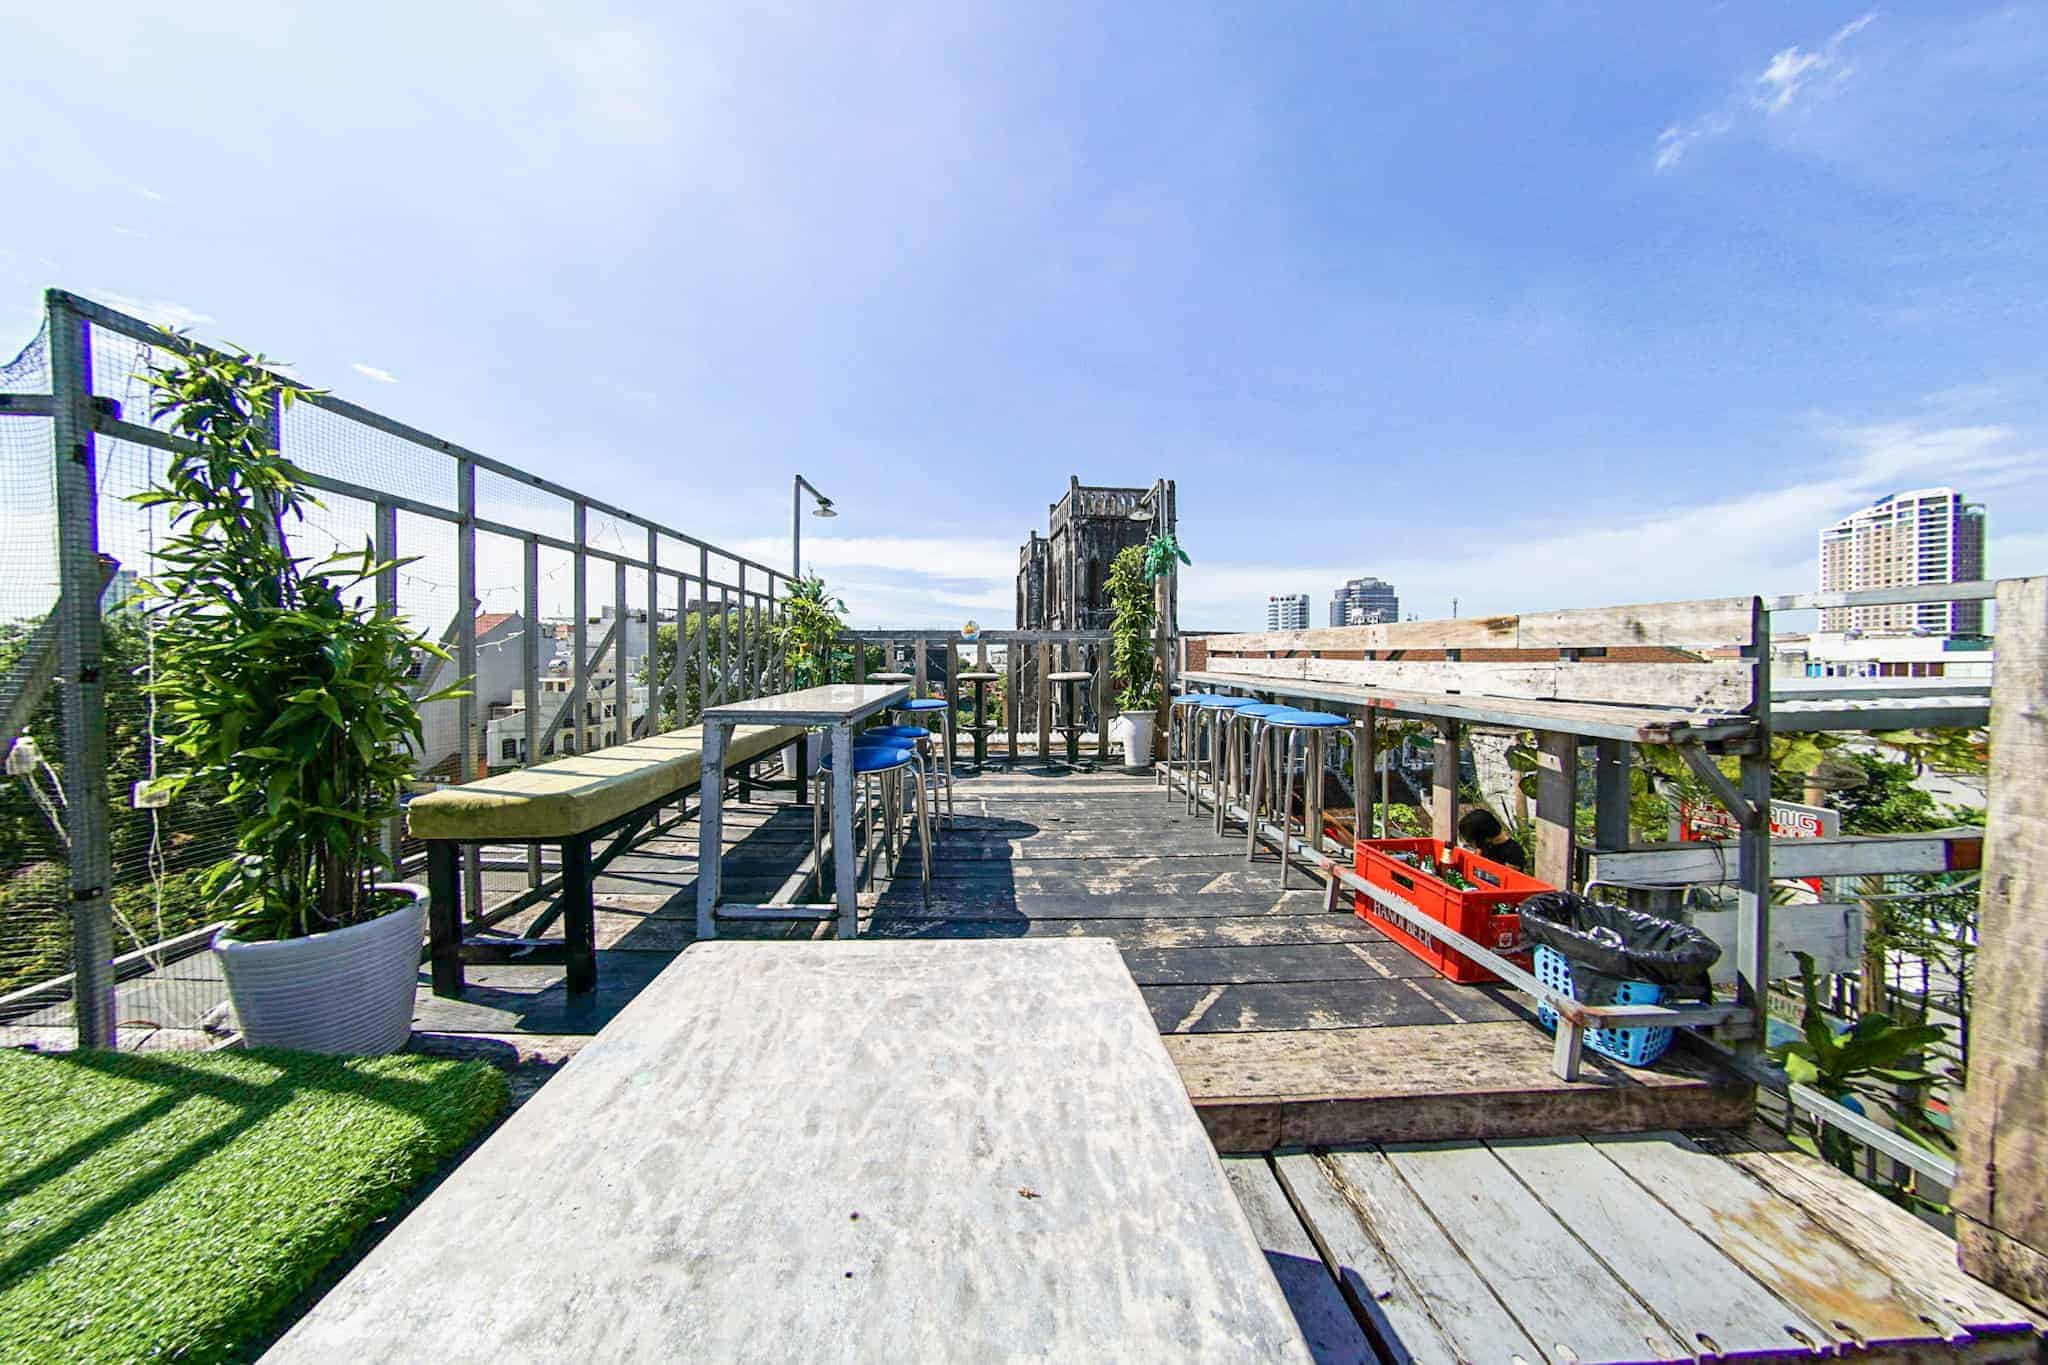 The rooftop bar of Chien Hostel provides a perfect view of the town. Hanoi, Vietnam.